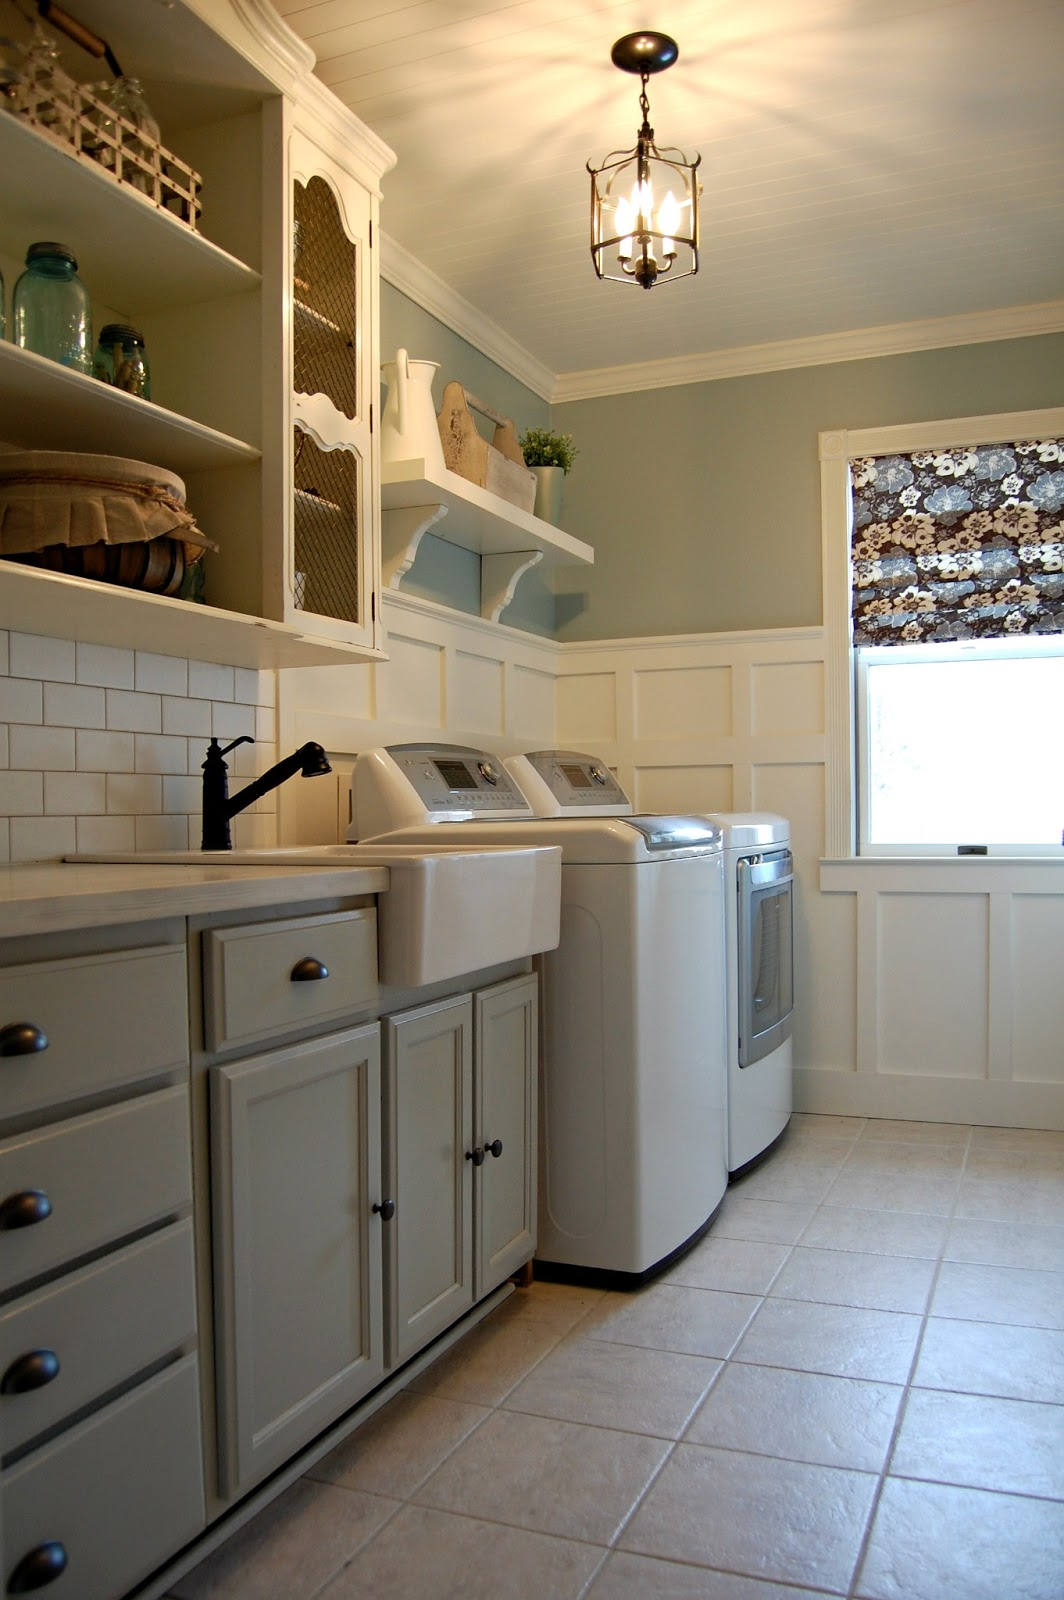 Paris Bedroom Decorating Ideas Roly Poly Farm Laundry Room Reveal